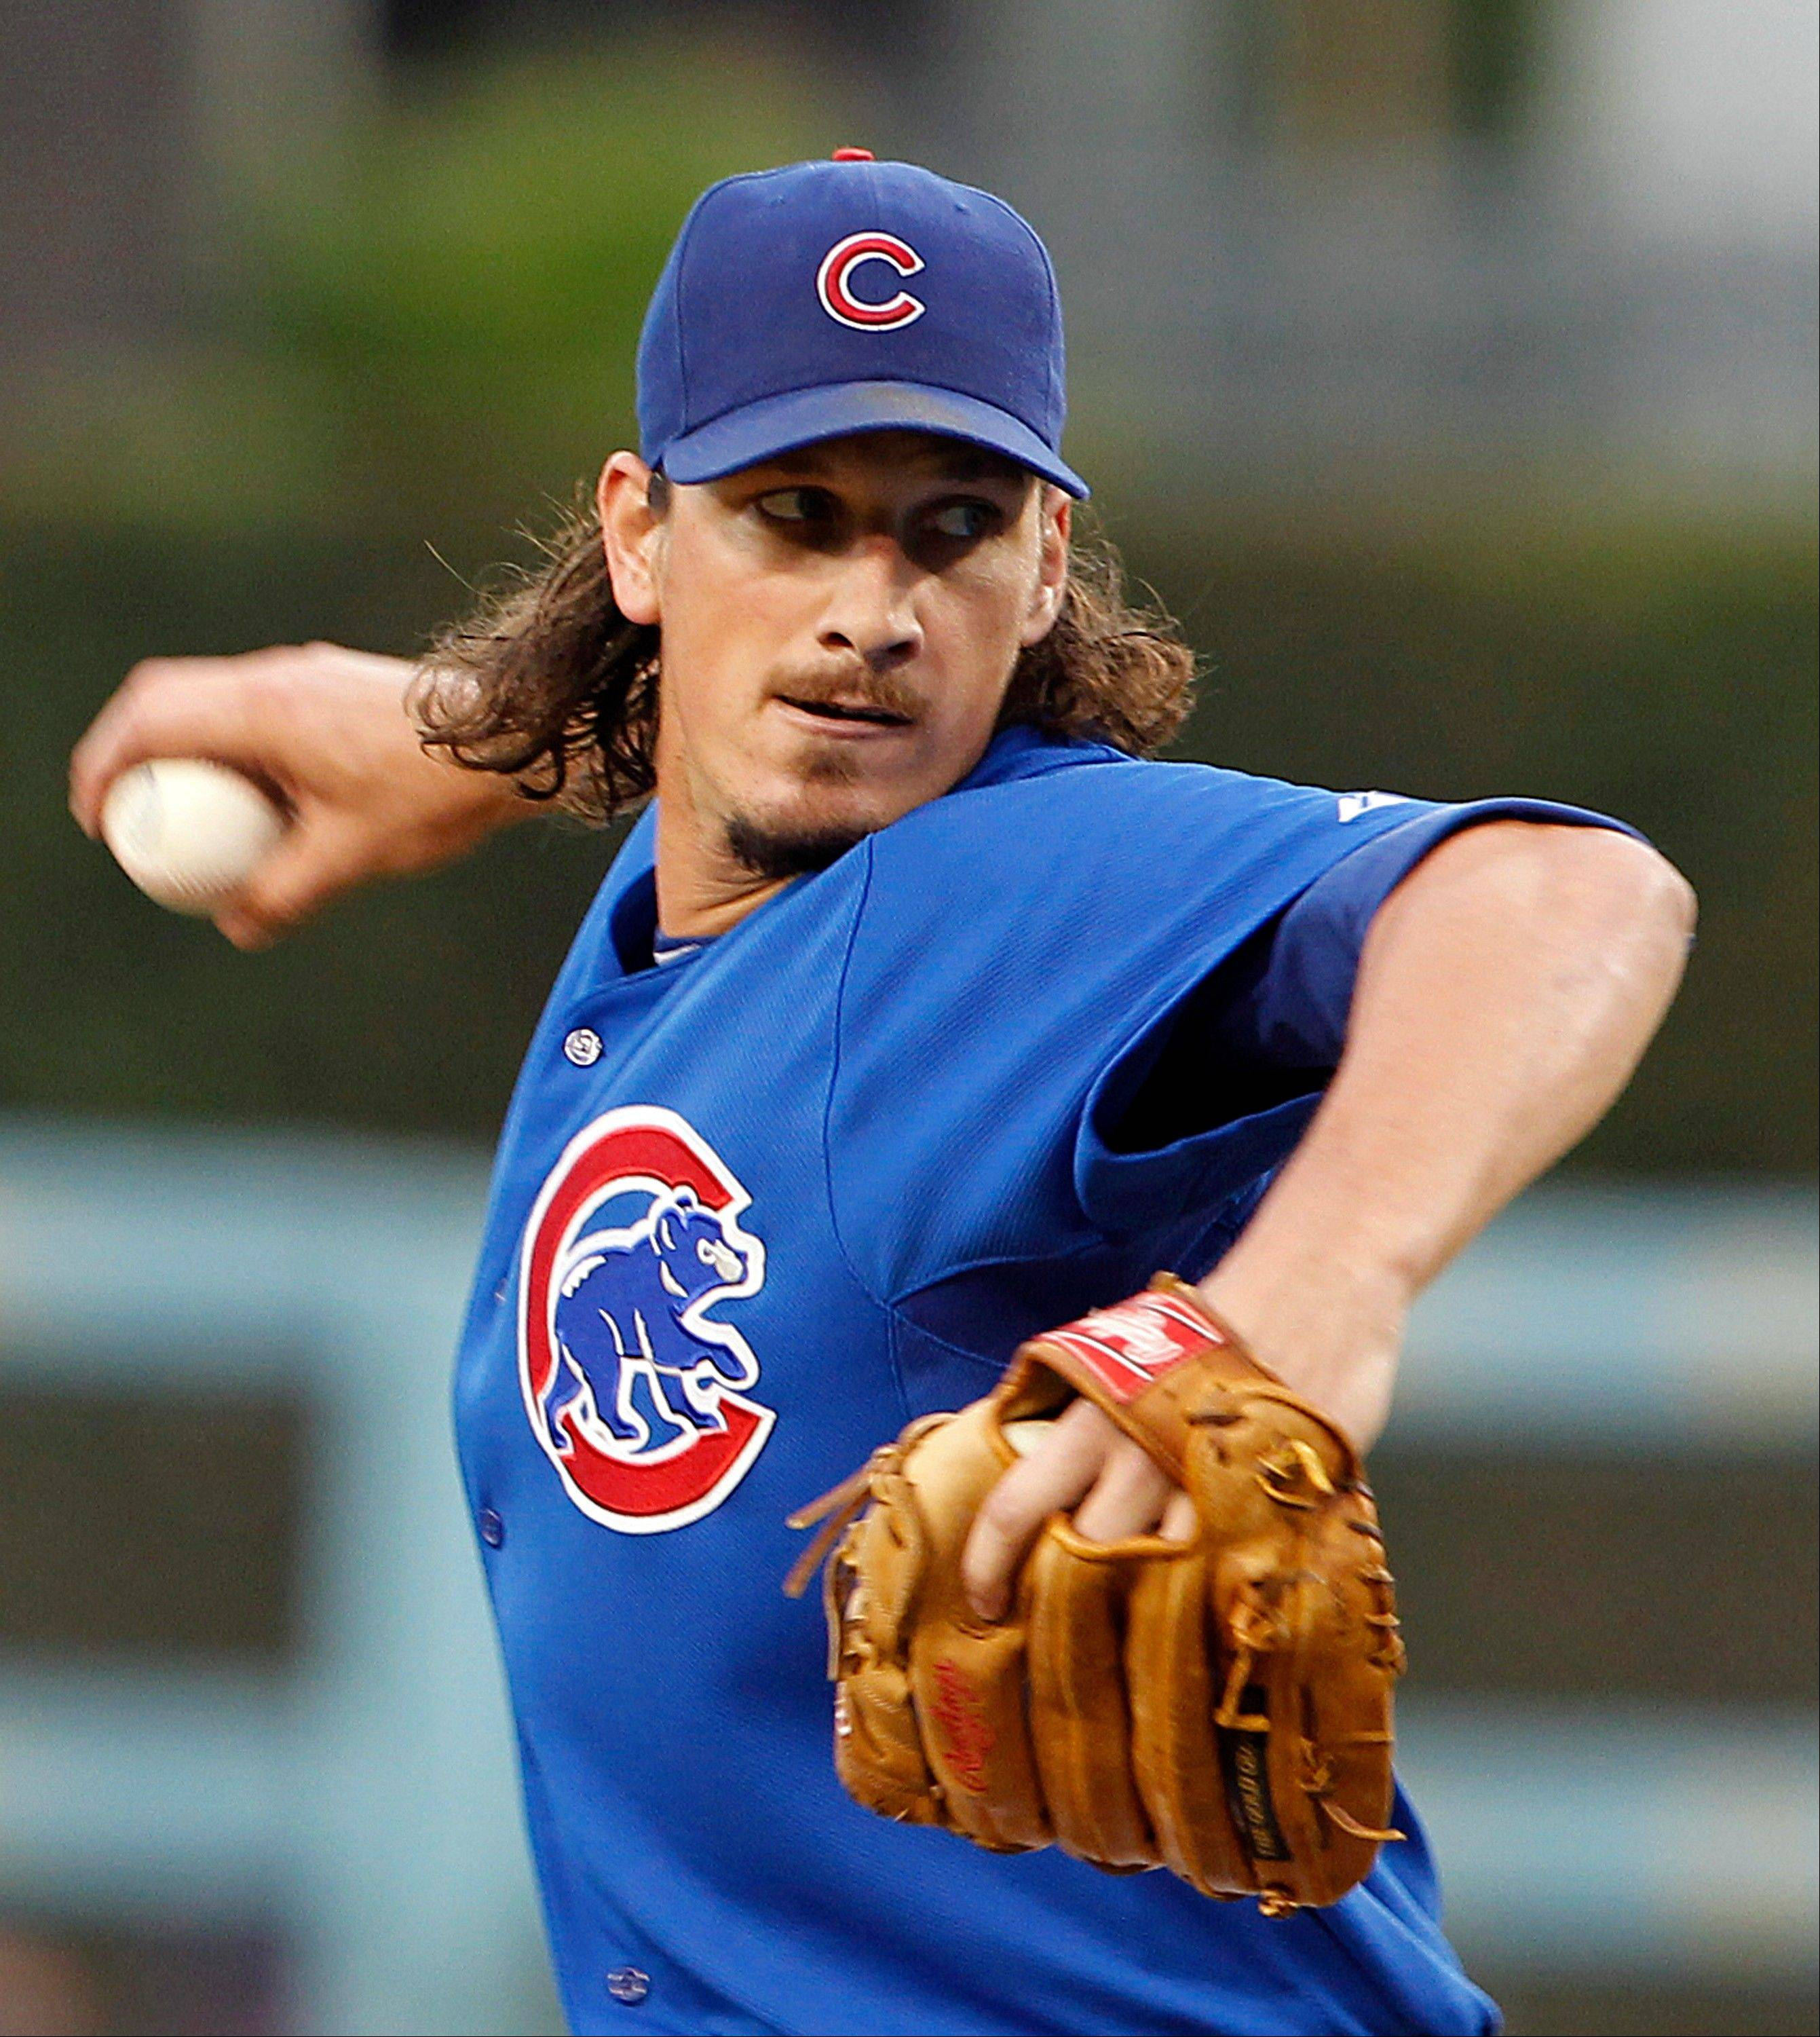 Starting pitcher Jeff Samardzija has stepped up in more ways than one this season for the Cubs.